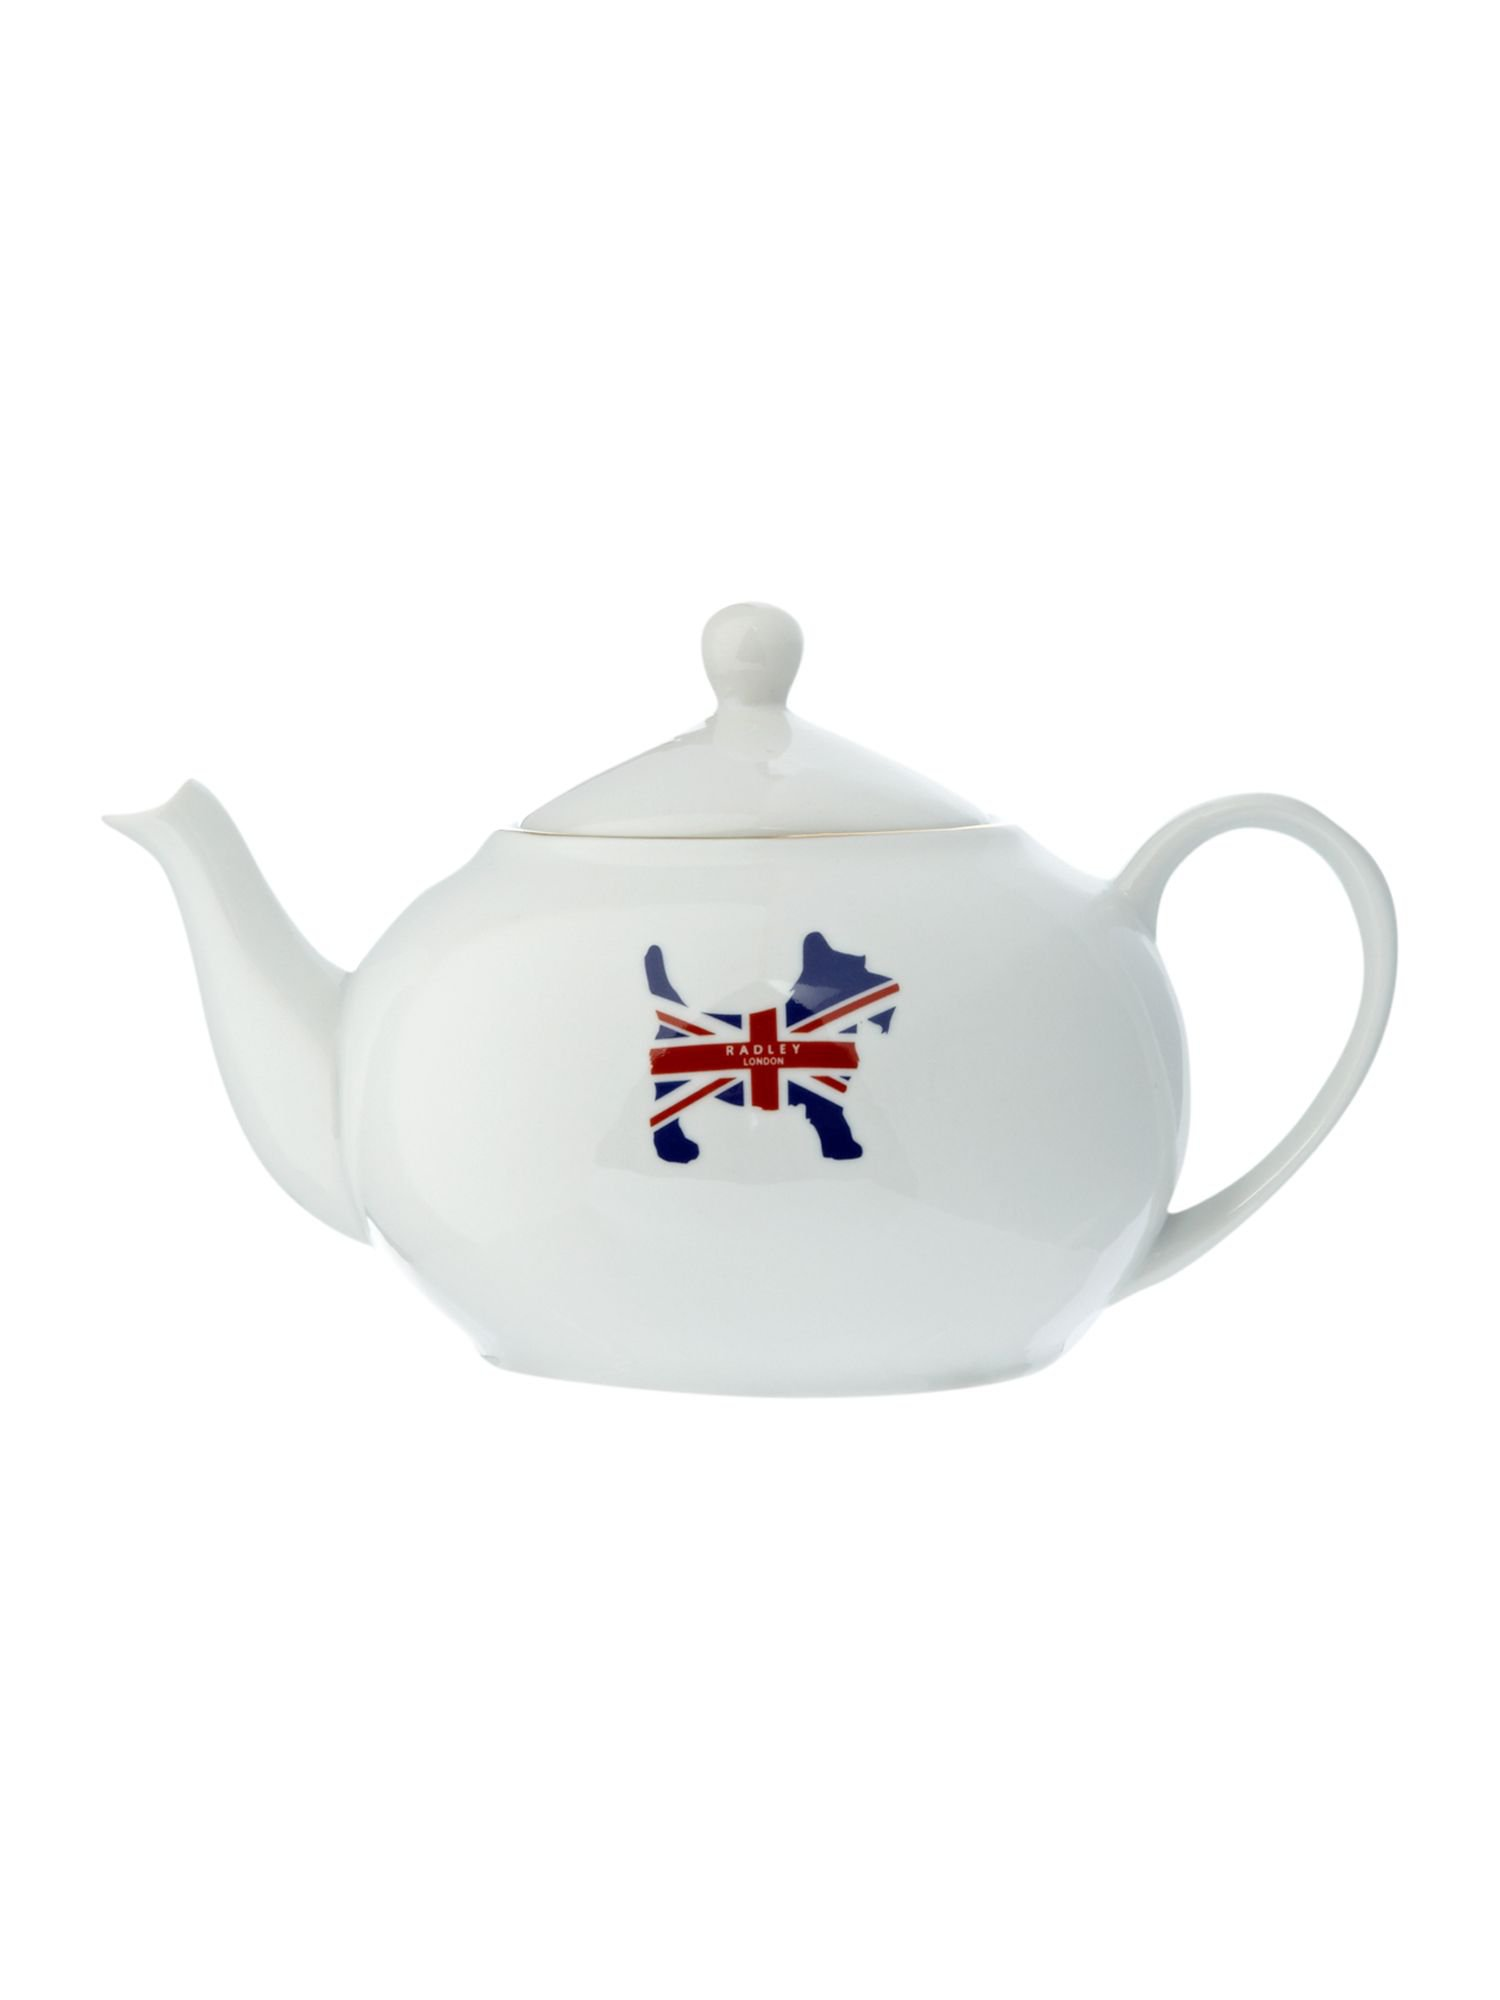 Radley Union jack tea pot - House of Fraser